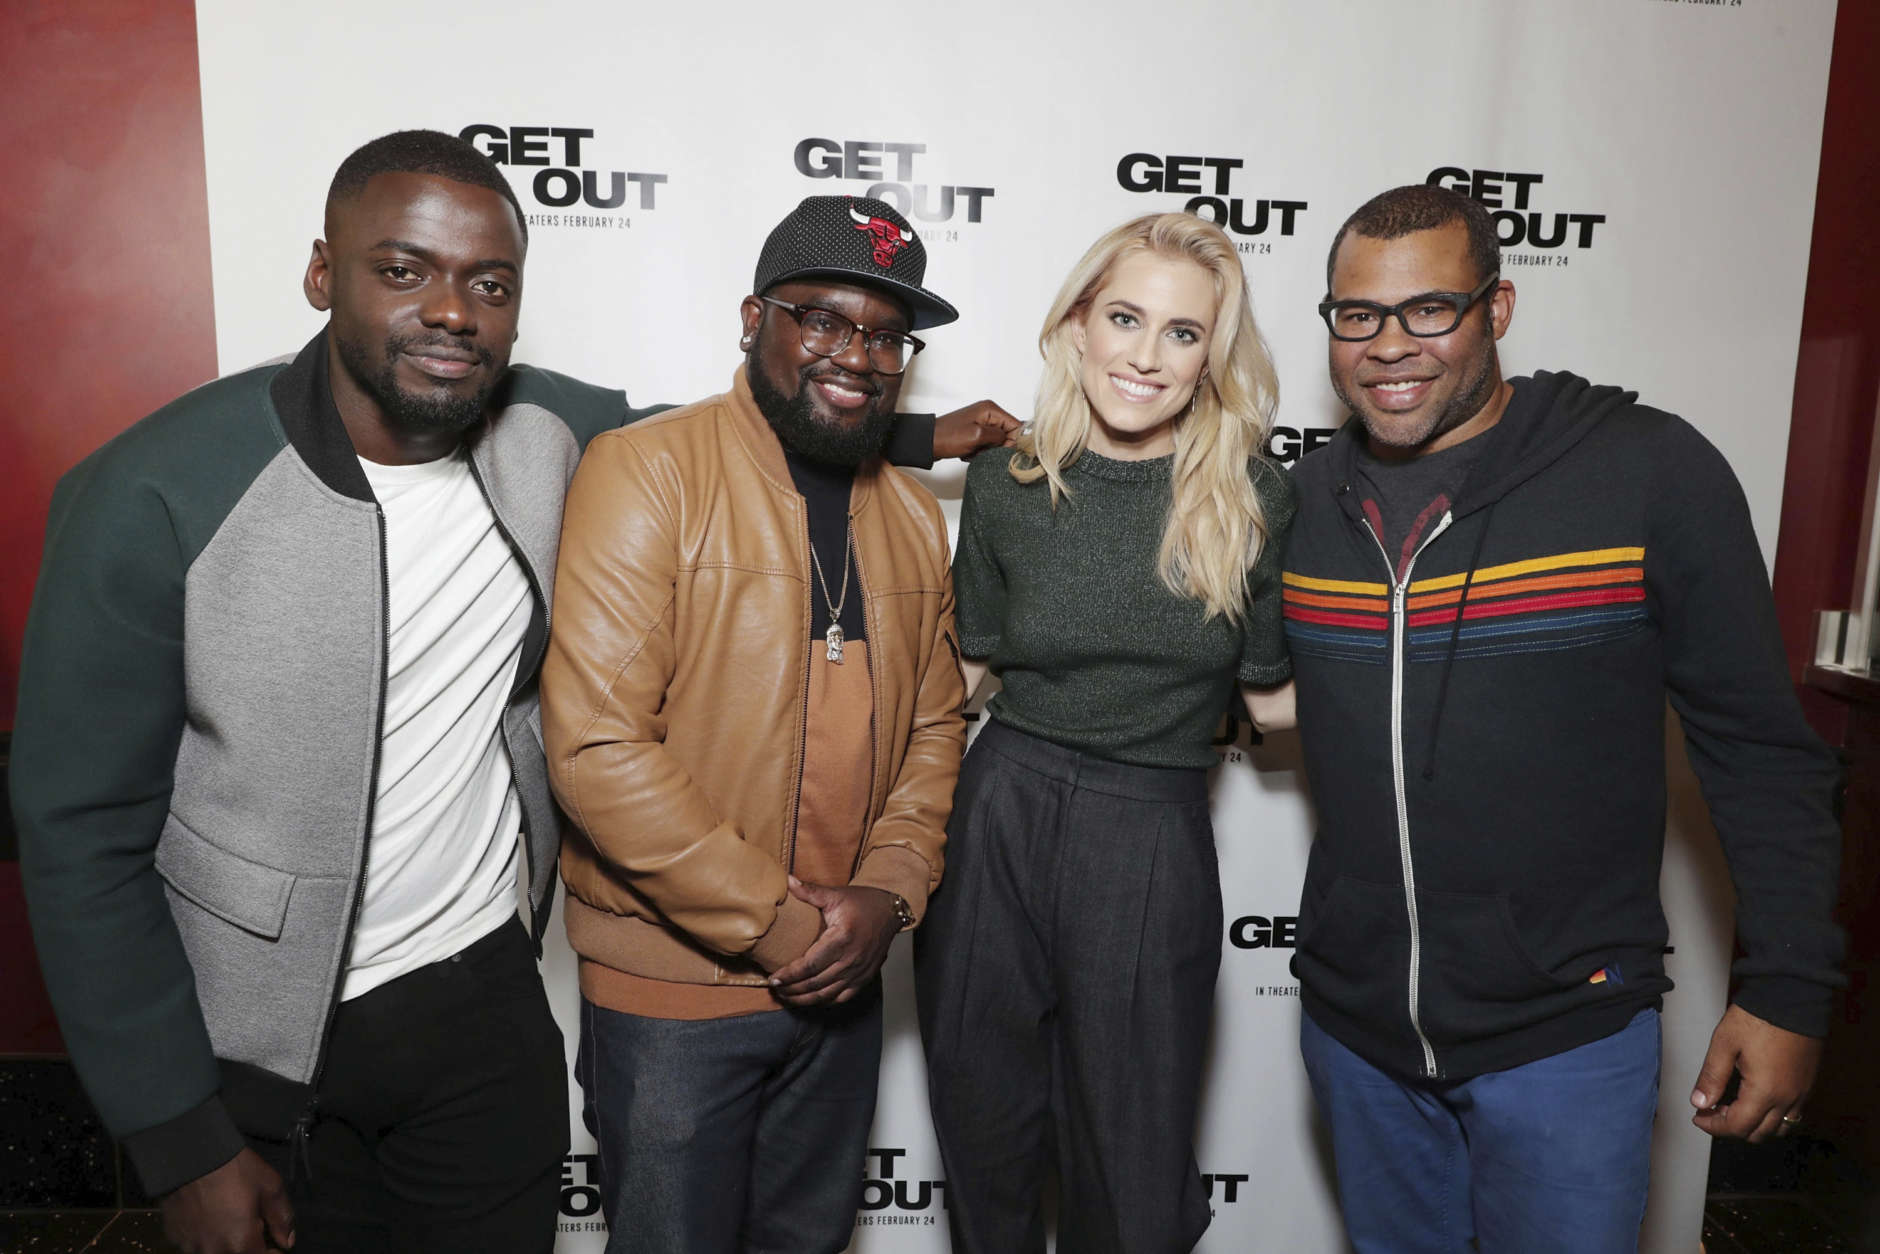 Exclusive - Daniel Kaluuya, Lil Rel Howery, Allison Williams and Writer/Director Jordan Peele seen at 'GET OUT' LA Tastemaker Screening hosted by Chance the Rapper at Arclight Hollywood on Wednesday, February 09, 2017, in Los Angeles, CA. (Photo by Eric Charbonneau/Invision for Universal Pictures/AP Images)